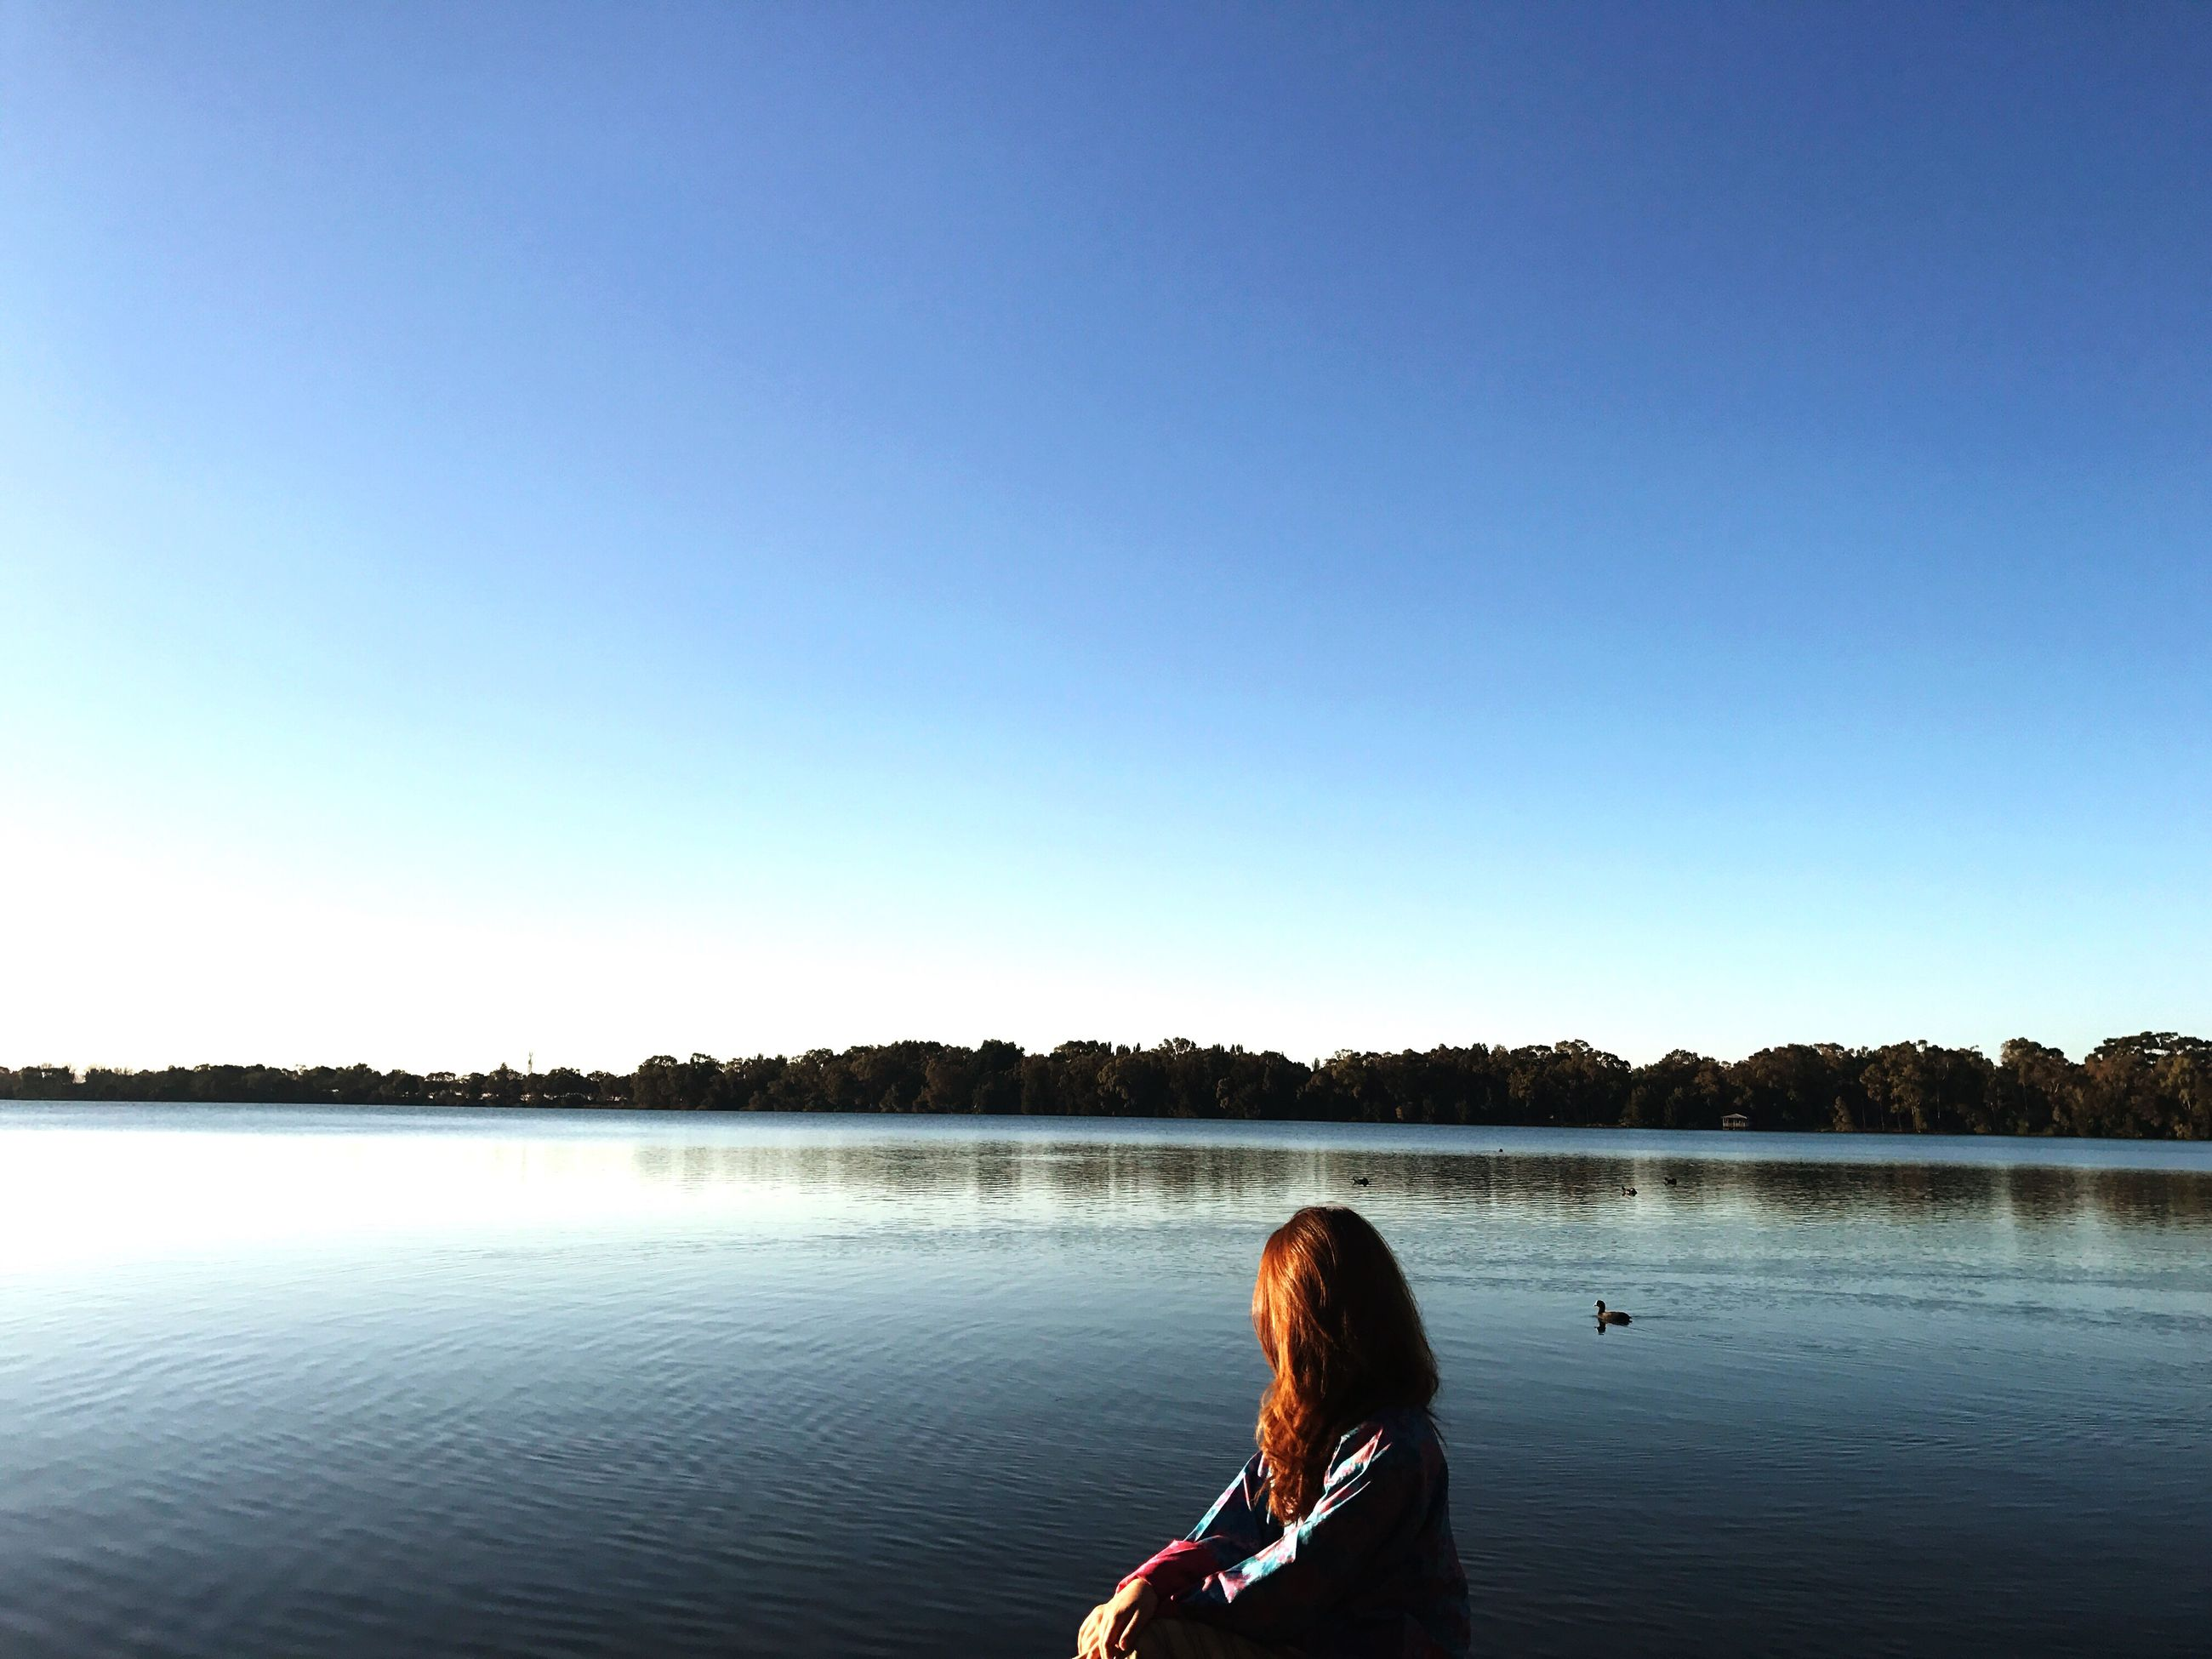 real people, rear view, copy space, lake, leisure activity, one person, beauty in nature, nature, women, clear sky, lifestyles, tranquil scene, scenics, water, day, blue, young women, tree, outdoors, standing, young adult, sky, adult, people